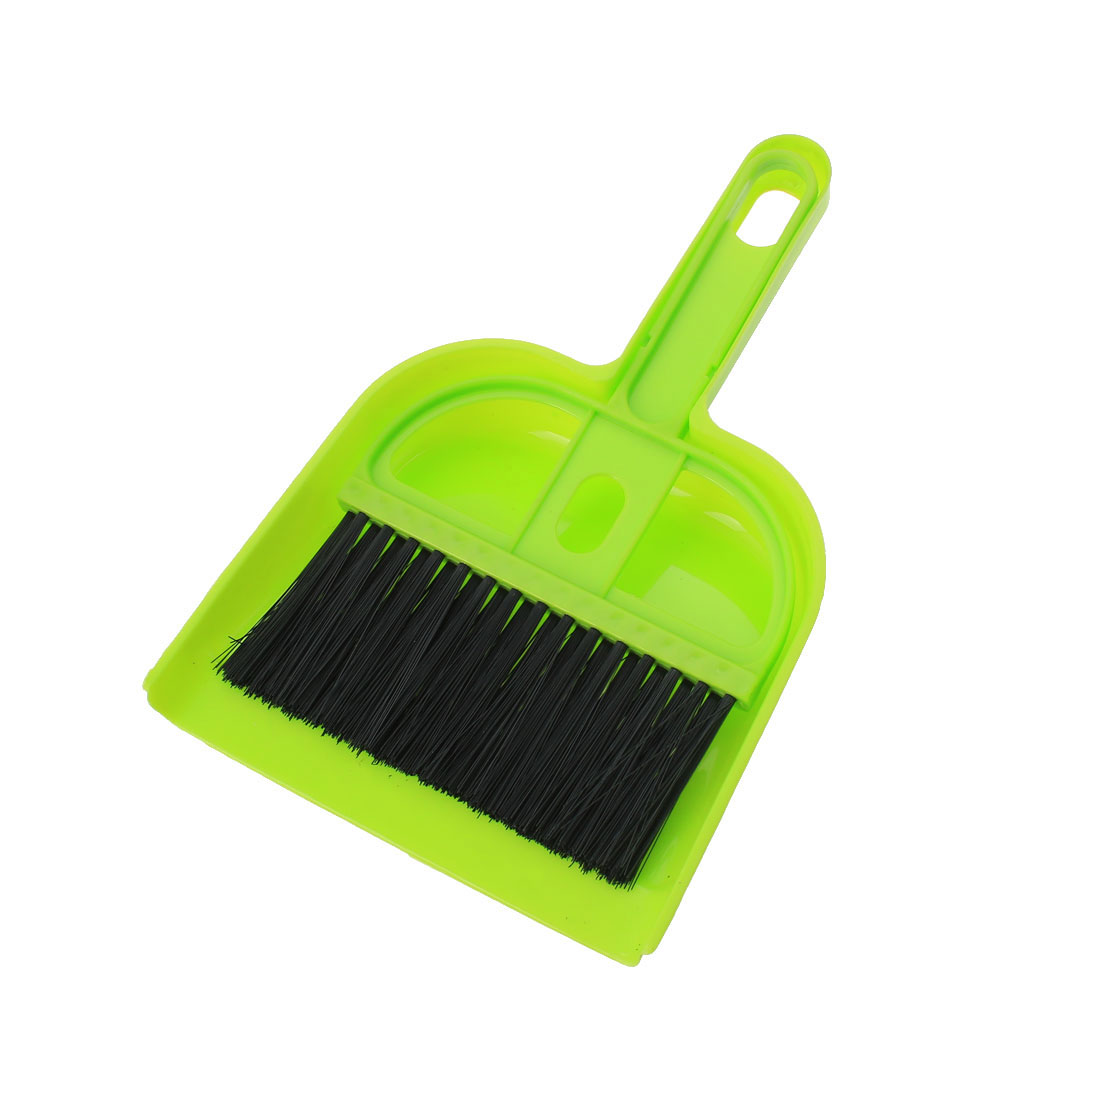 2 in 1 Set Room Corner Cleaning Tools Rubber Broom Dustpan Black Green